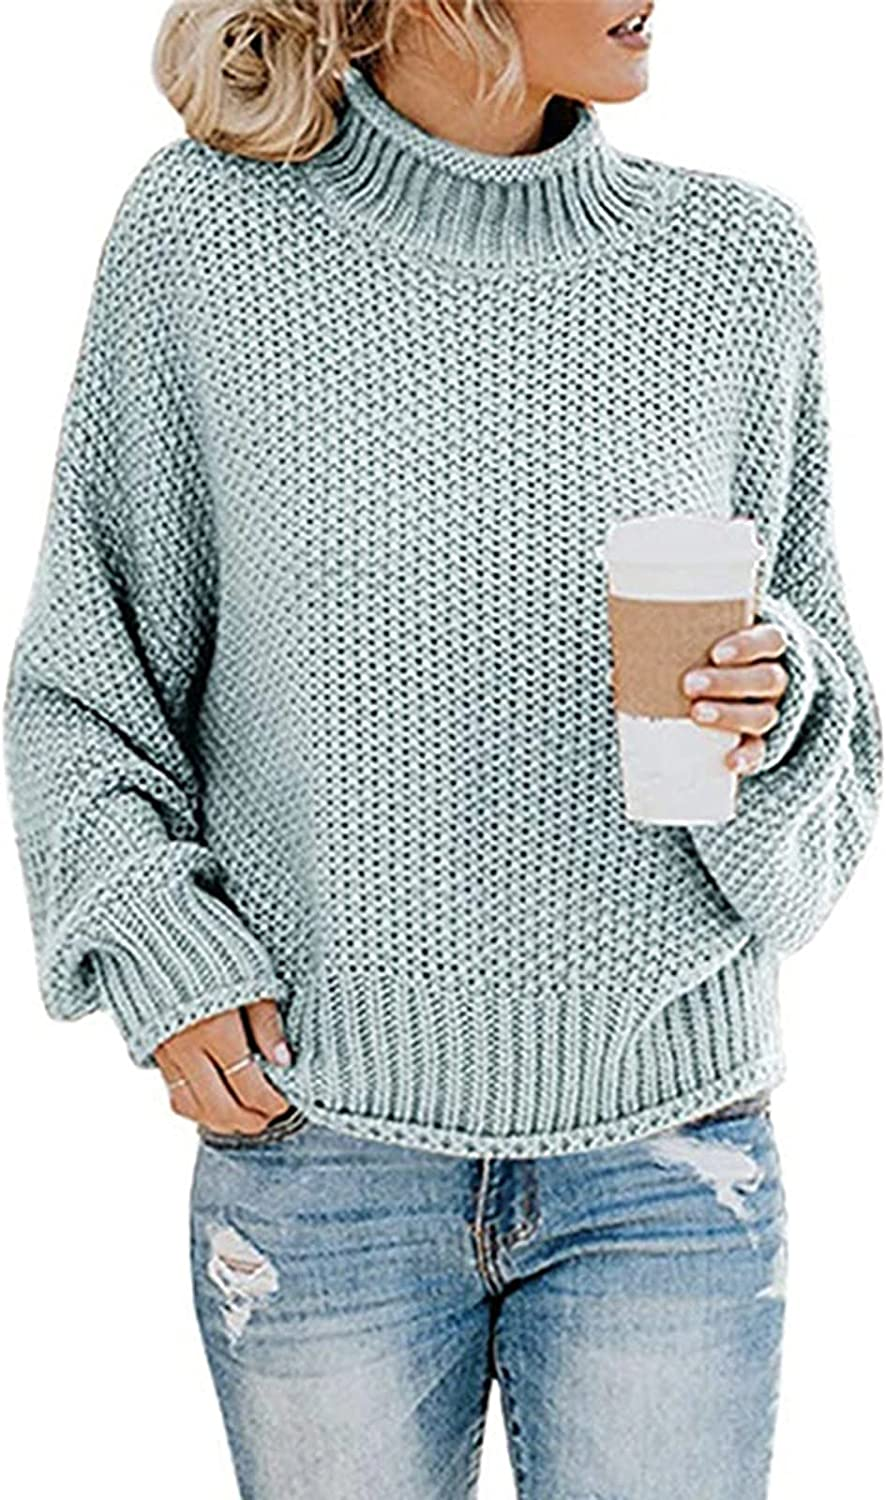 LINKIOM Sweaters for Women Casual Loose Long Sleeve Tops Solid Color Stitching Crewneck High Neck Sweater Pullover